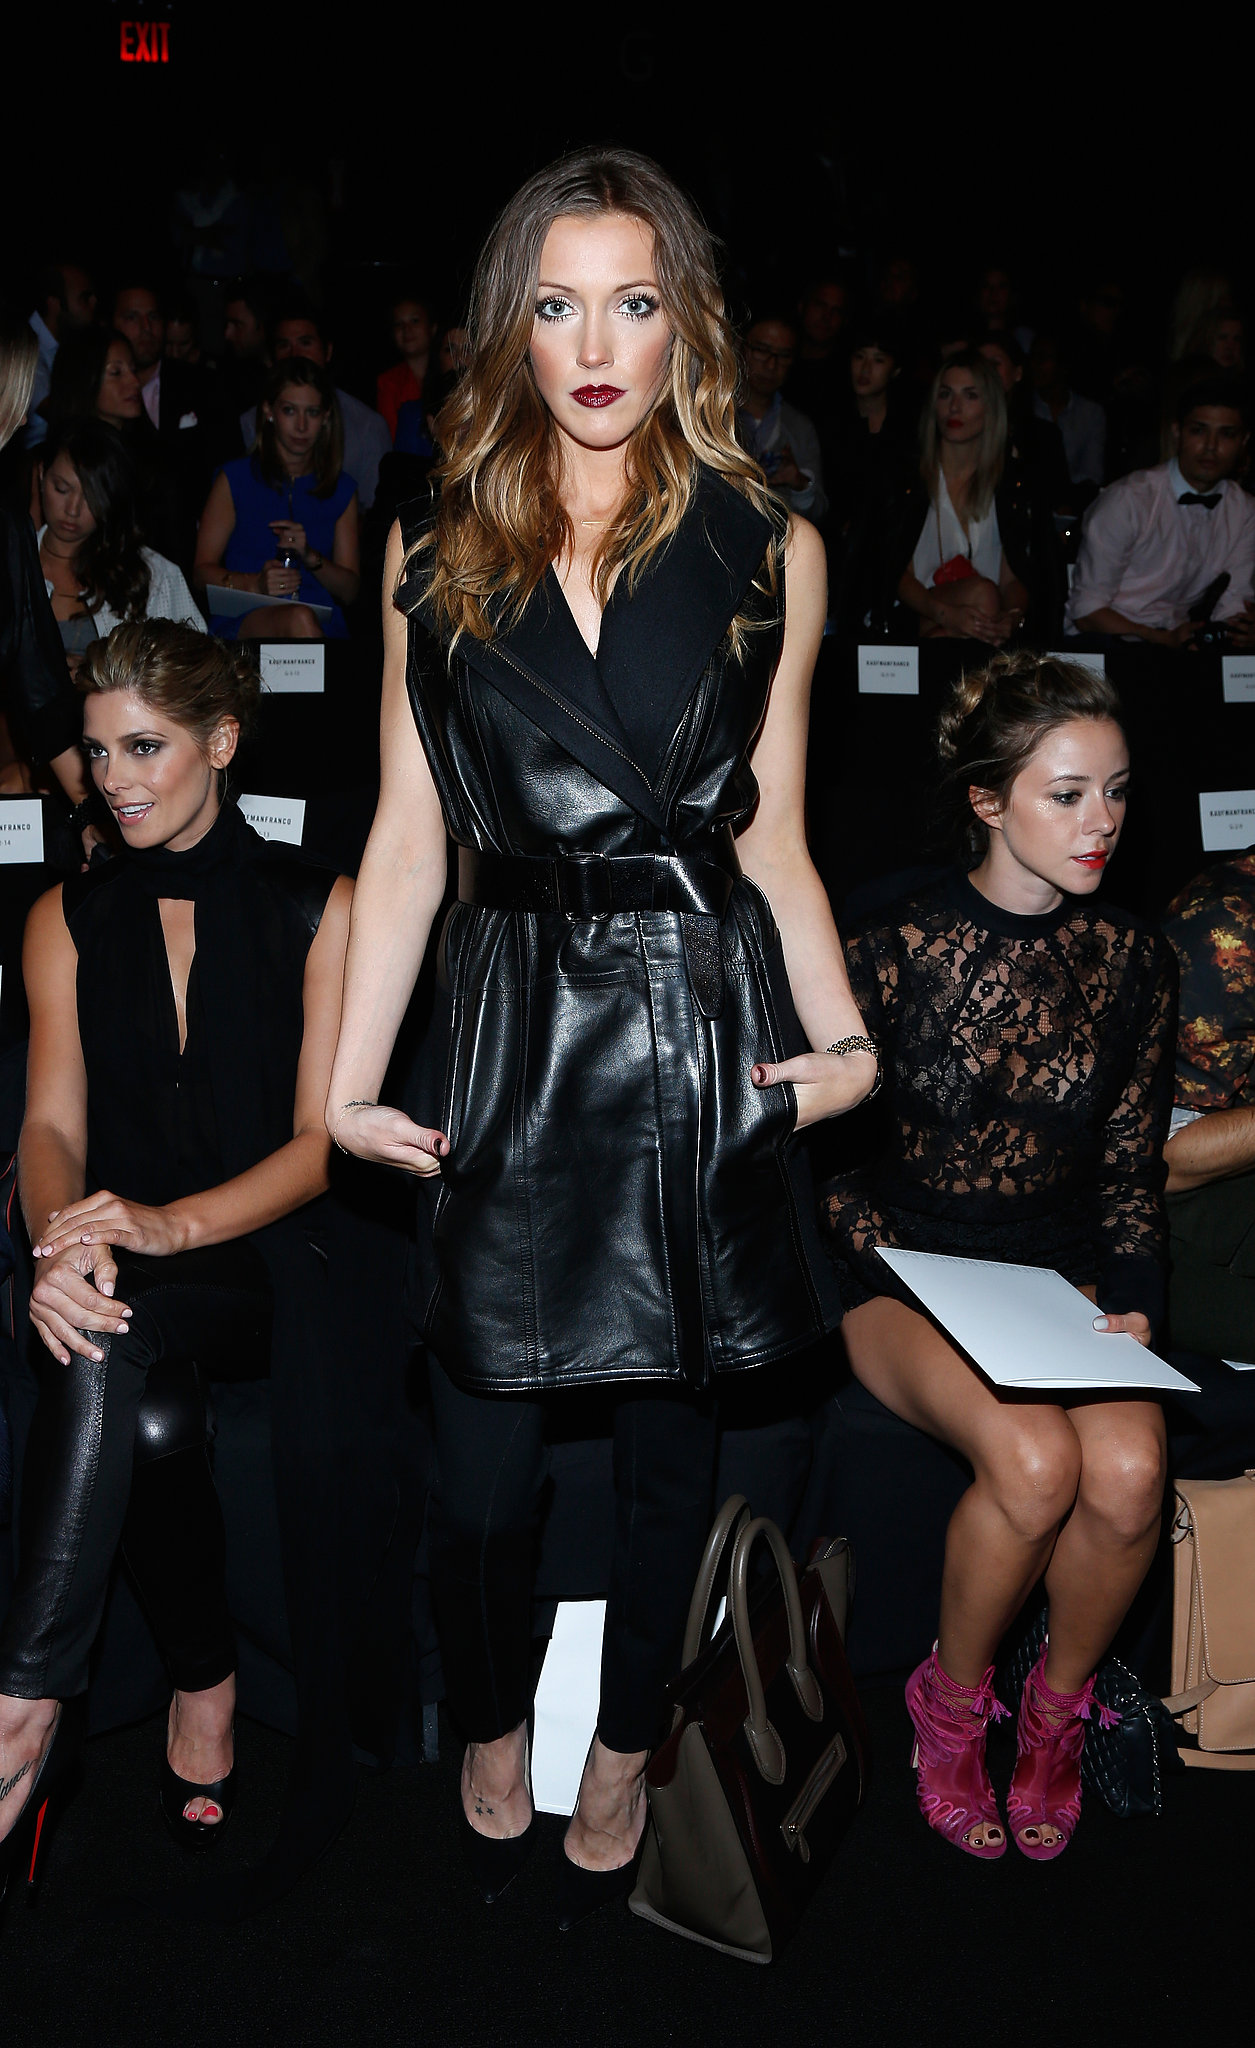 Katie Cassidy went for a dramatic vamp look in a slick black leather vest at Kaufmanfranco.